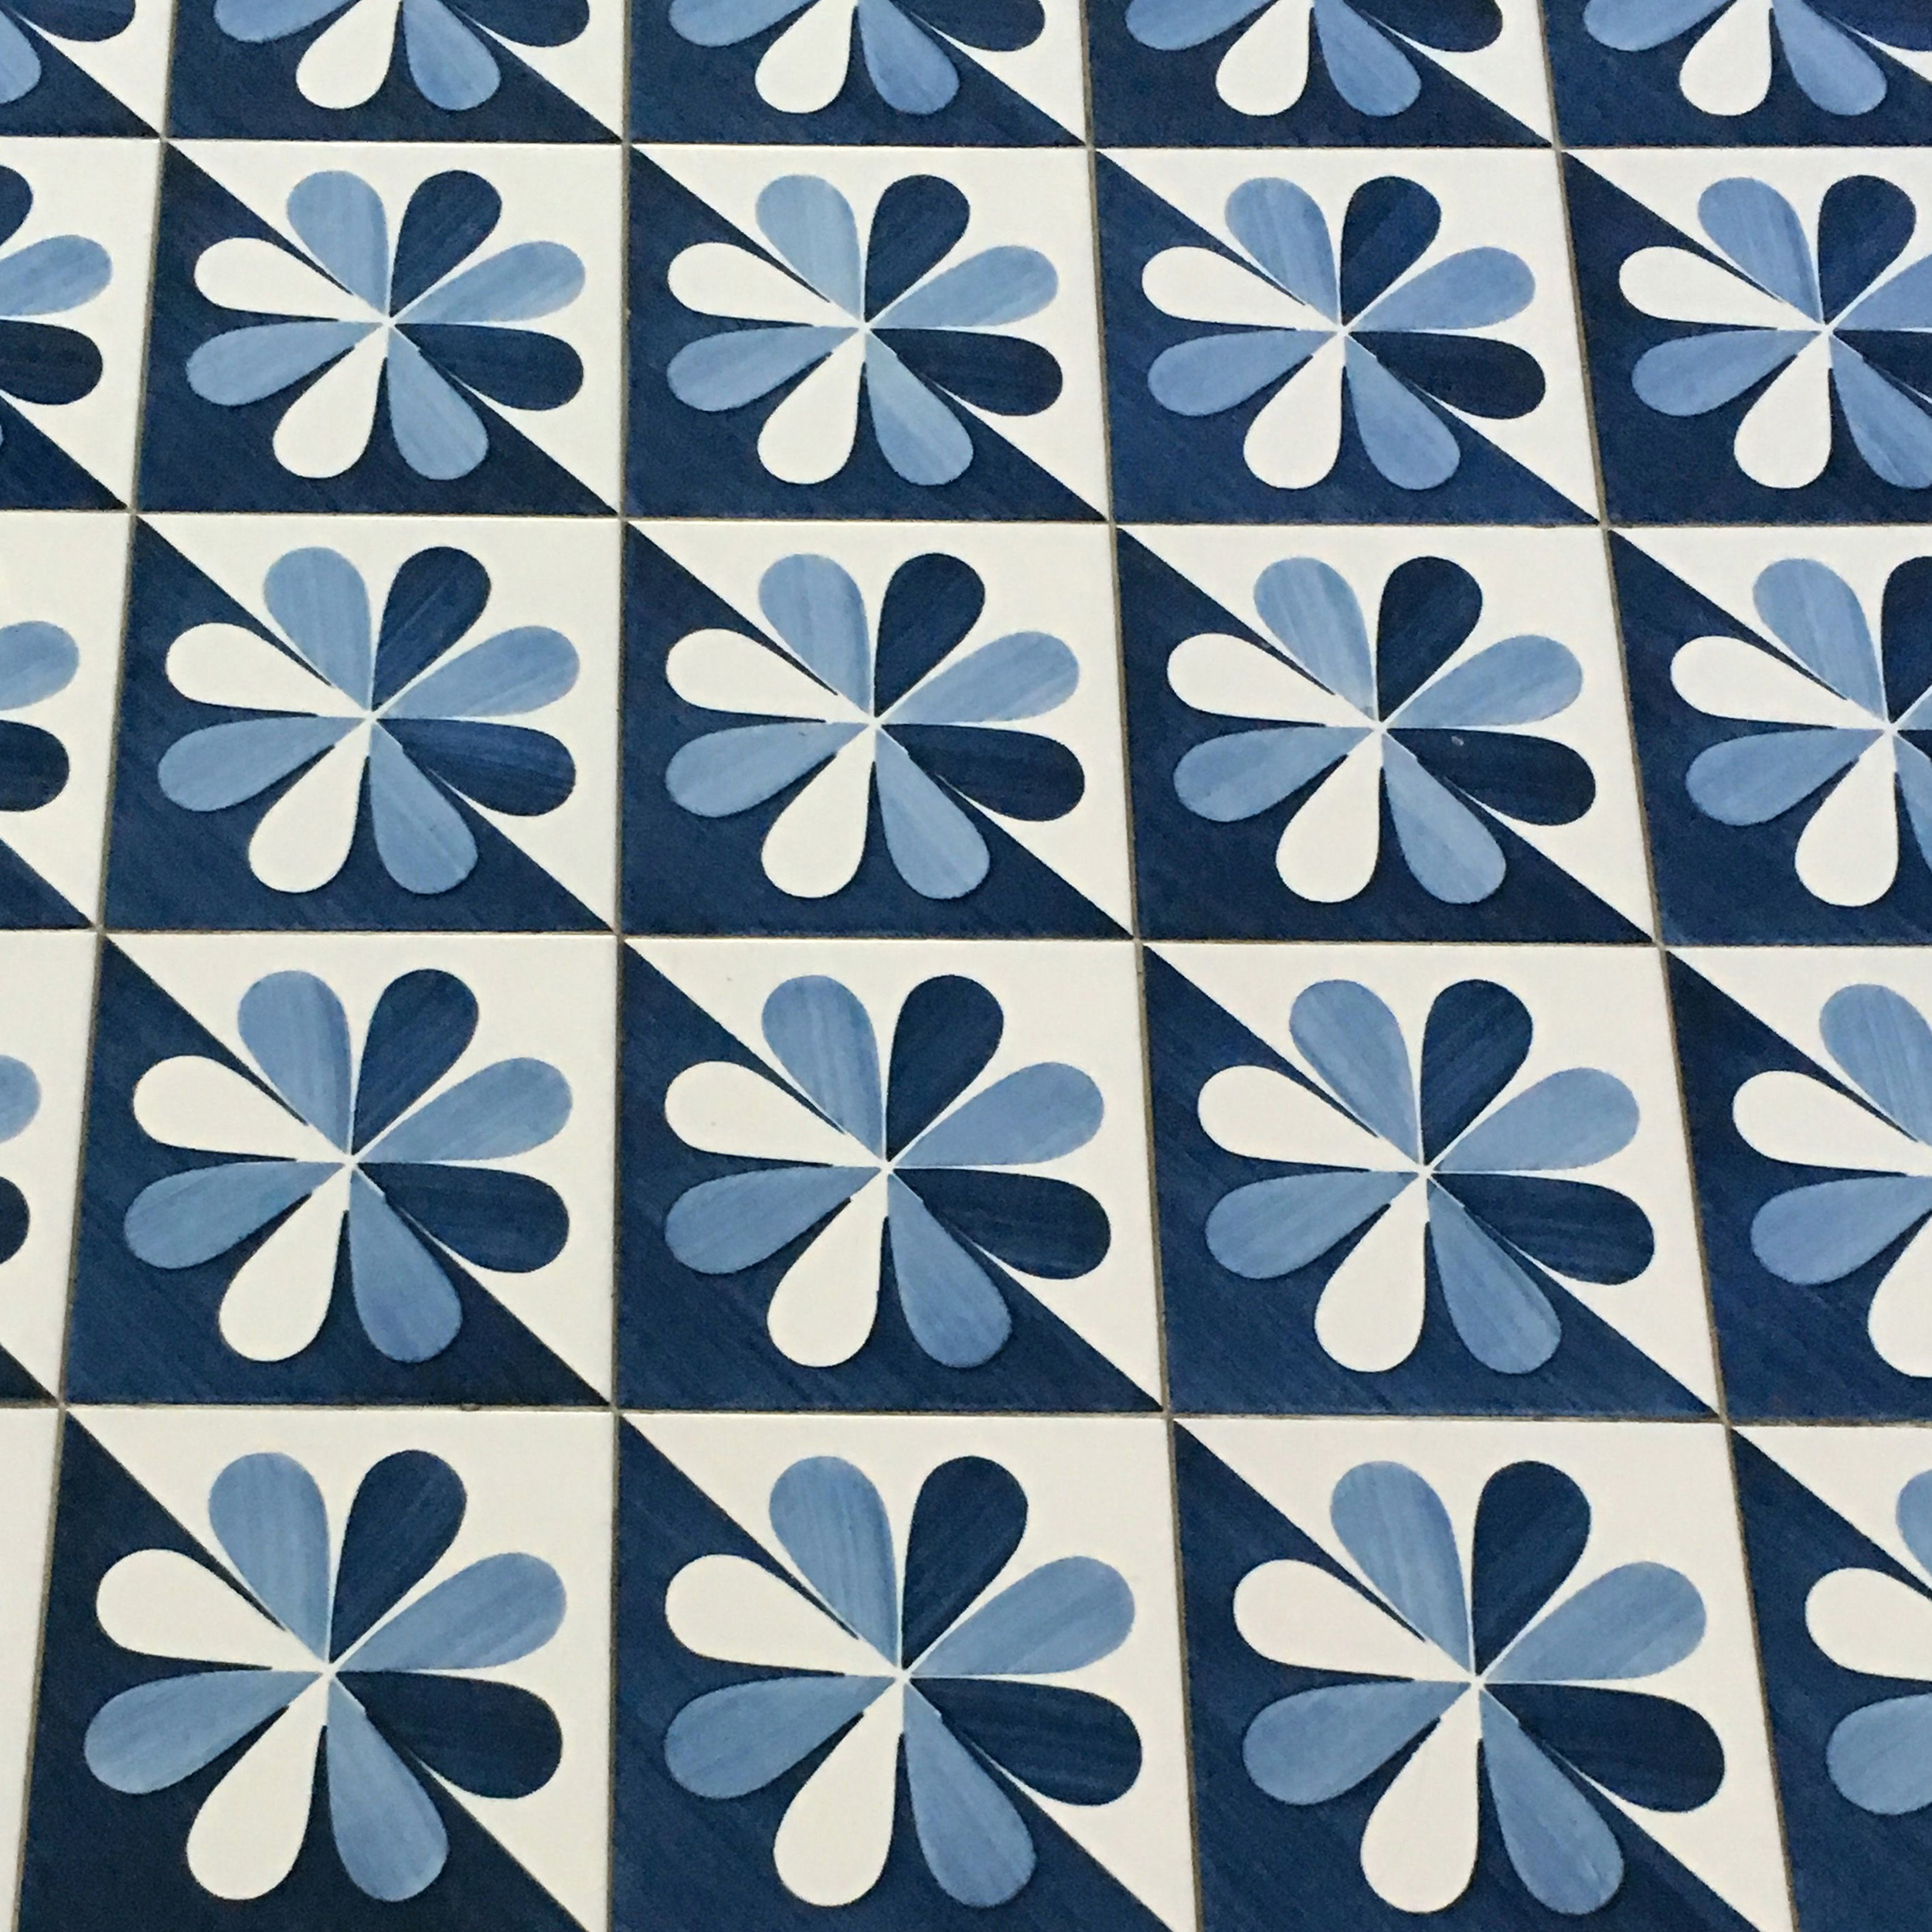 Tiles in the hotel